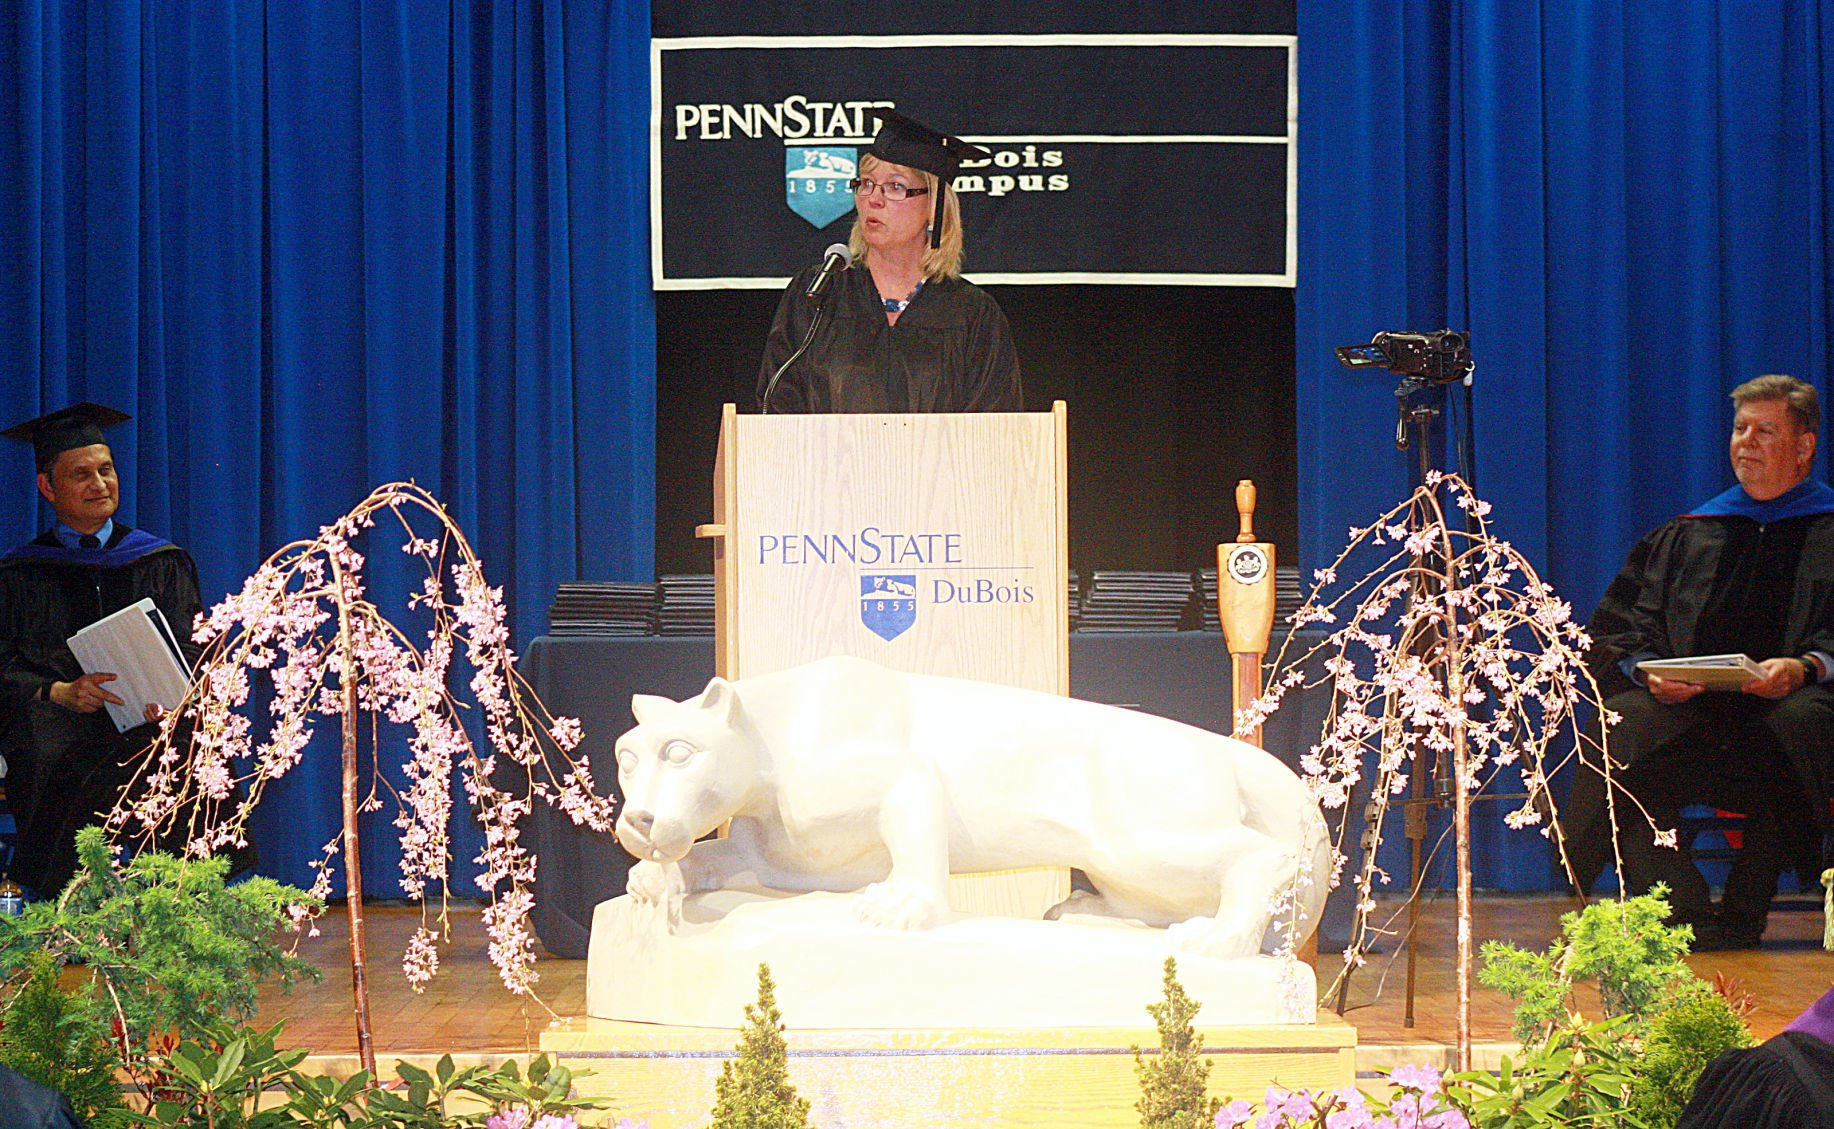 Penn State Commencement Spring commencement celebrated at